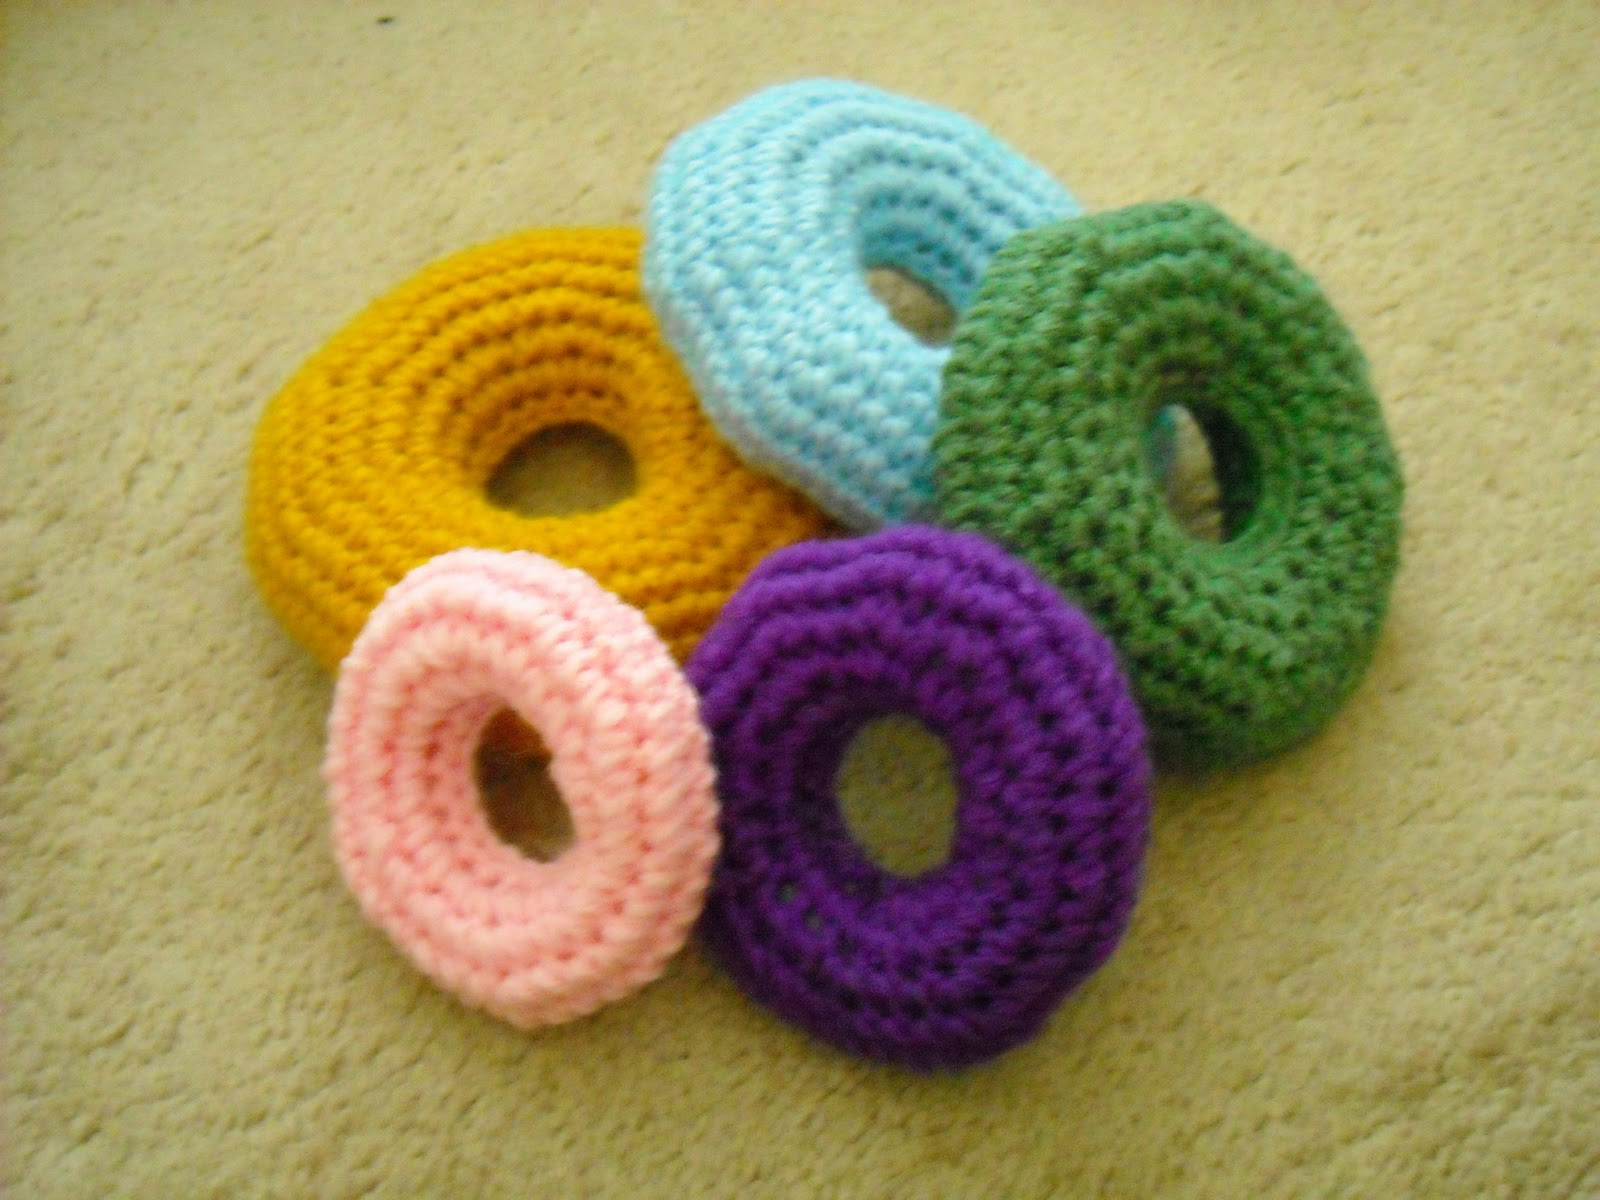 Crochet Rings Luxury A Crafty Cook Crochet Baby Ring Stacking toy – Part 1 Of Unique 40 Pics Crochet Rings